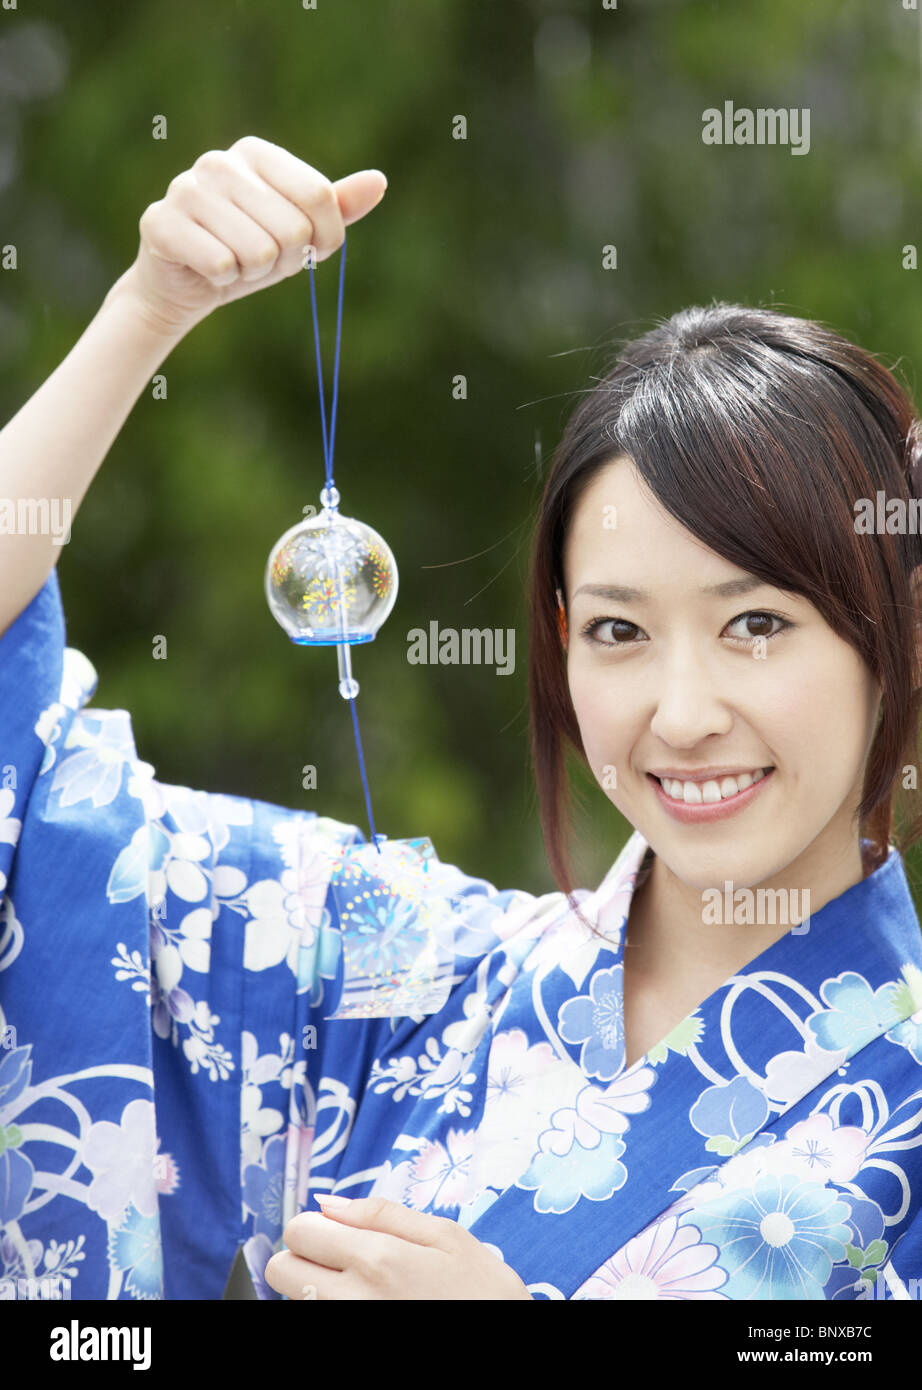 Young woman holding wind chime - Stock Image